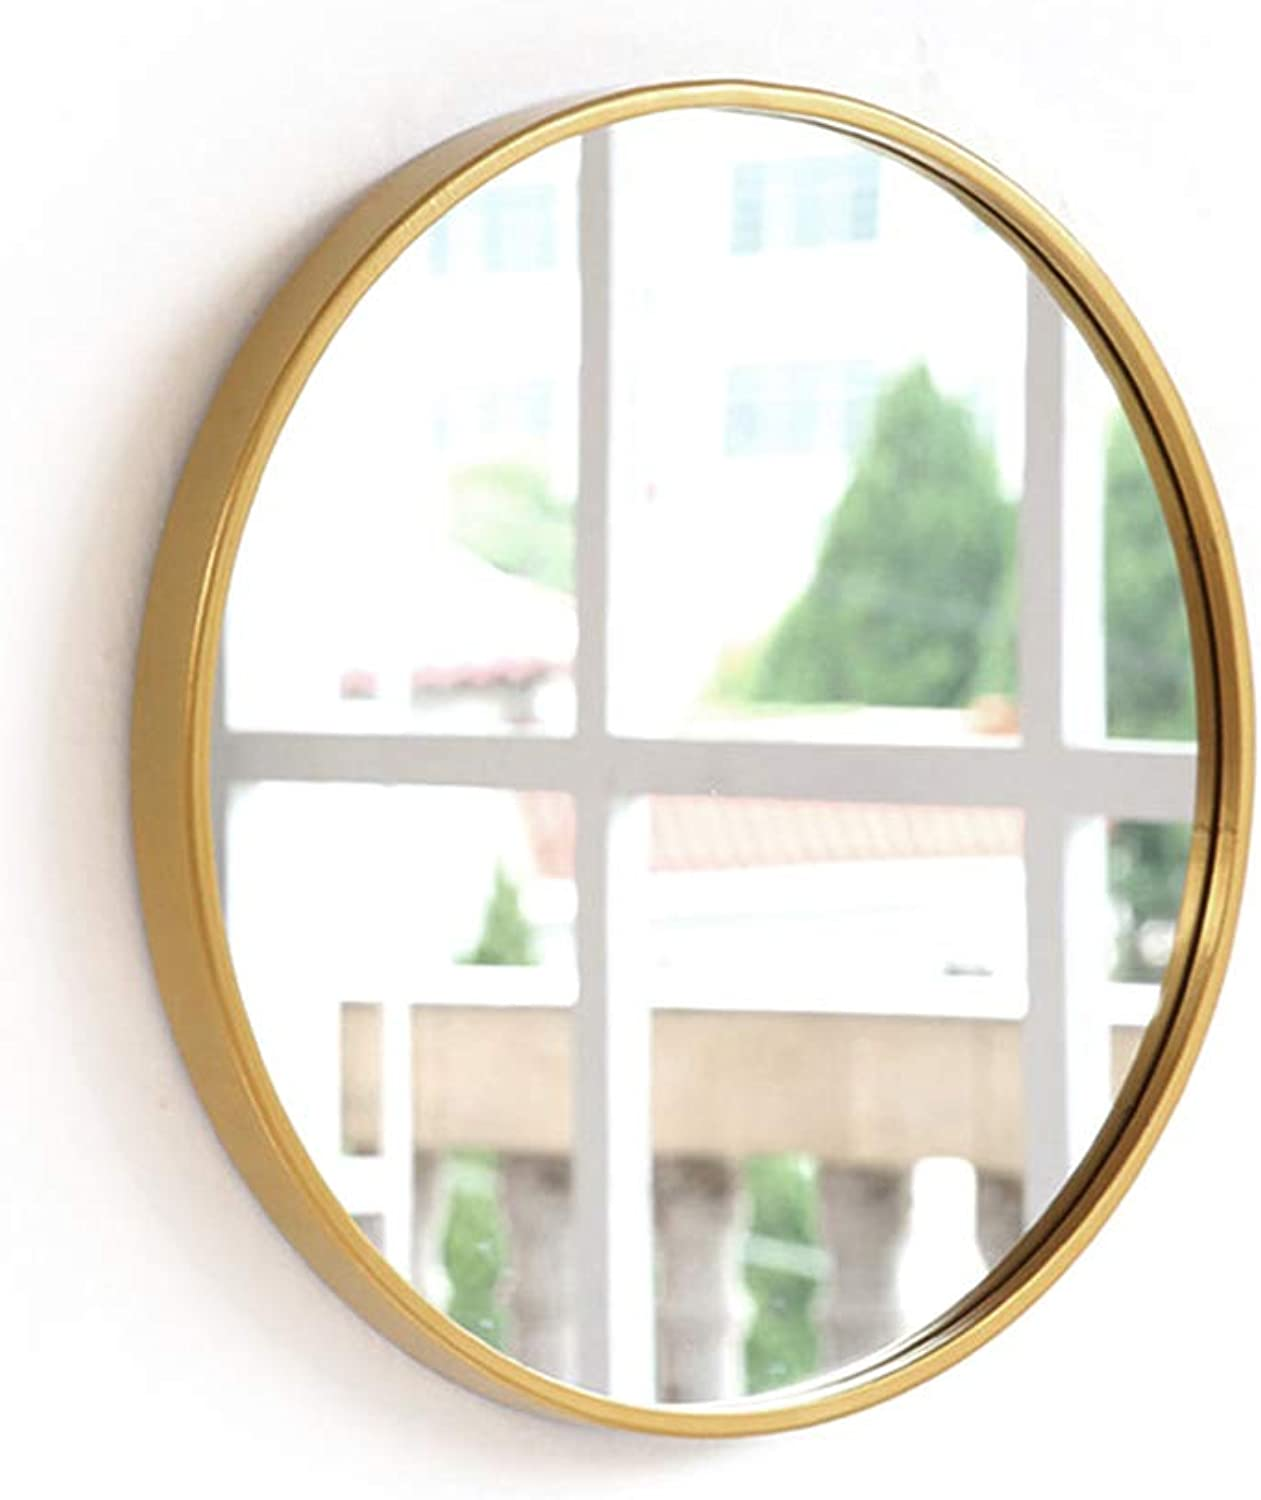 ZYear Round Wall Mirror Decorative gold Metal Large Wall Mirror for Bedroom Bathroom (Size   23.6-inch)